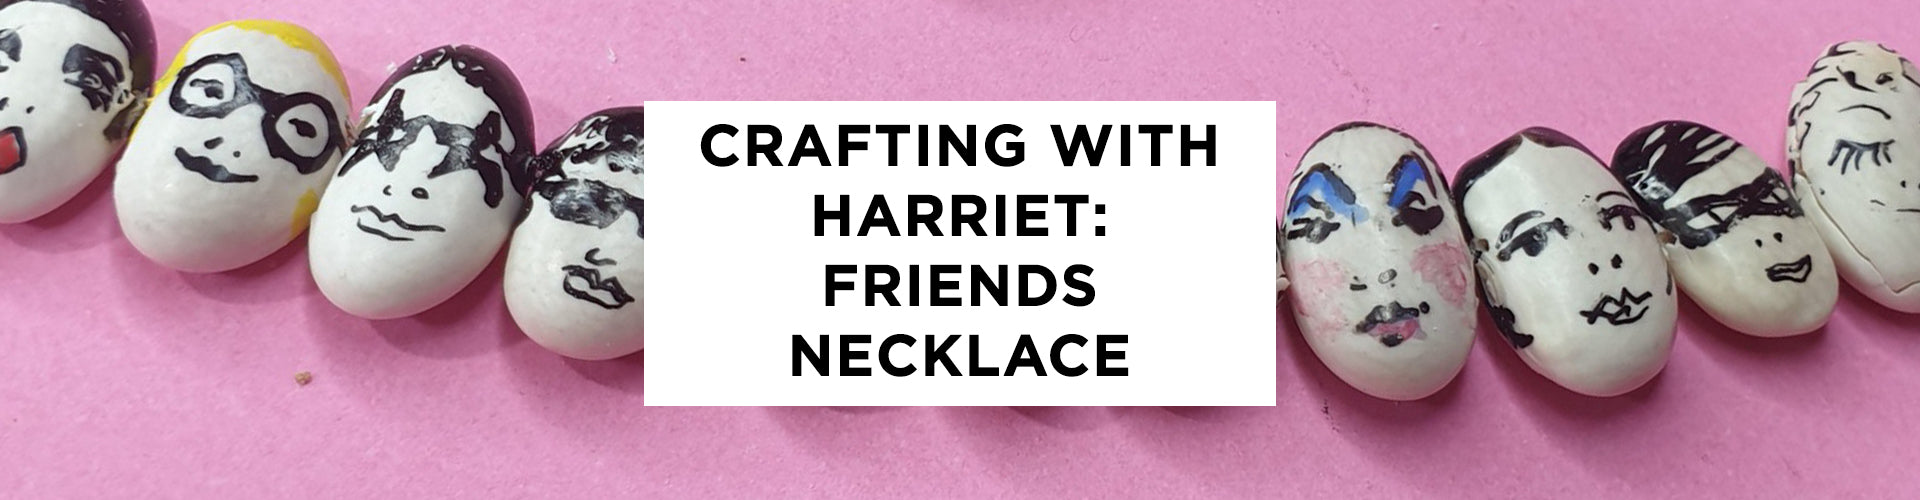 Crafting at Home with Harriet: Friends Necklace